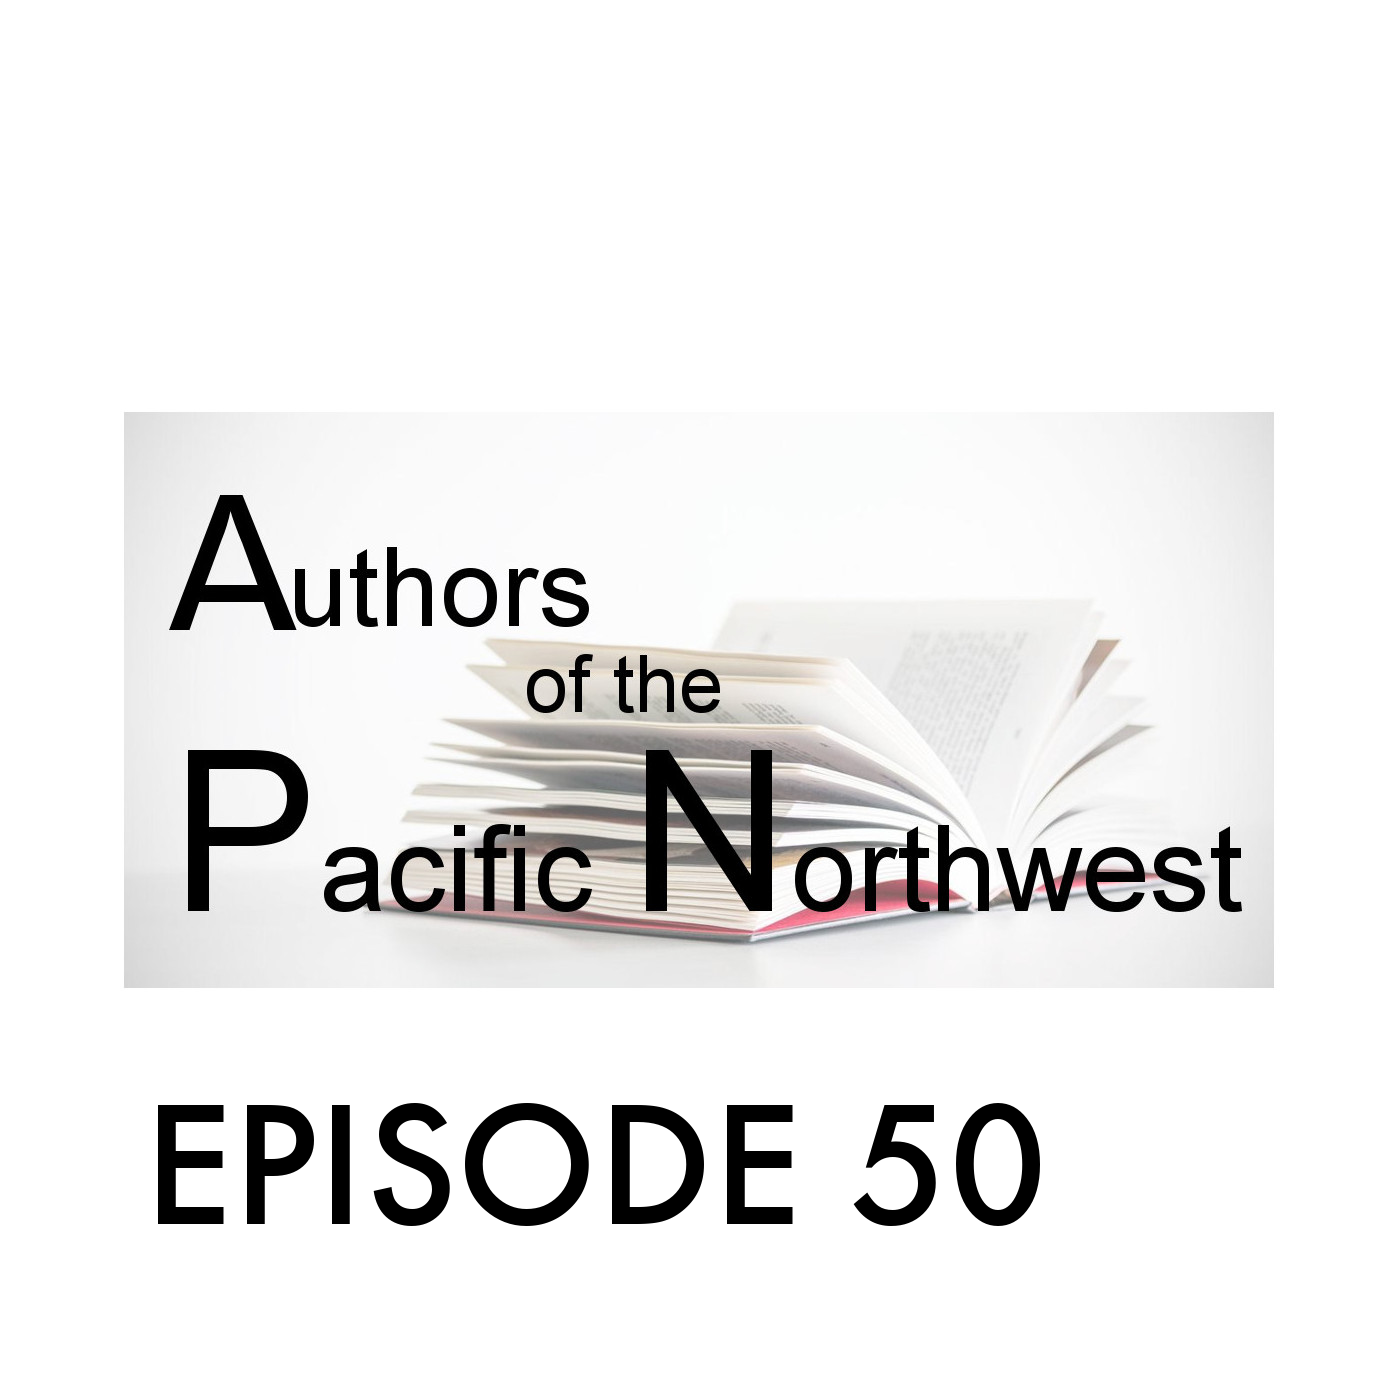 Episode 50: Stevan Allred; Portland, Oregon's Fiction Author